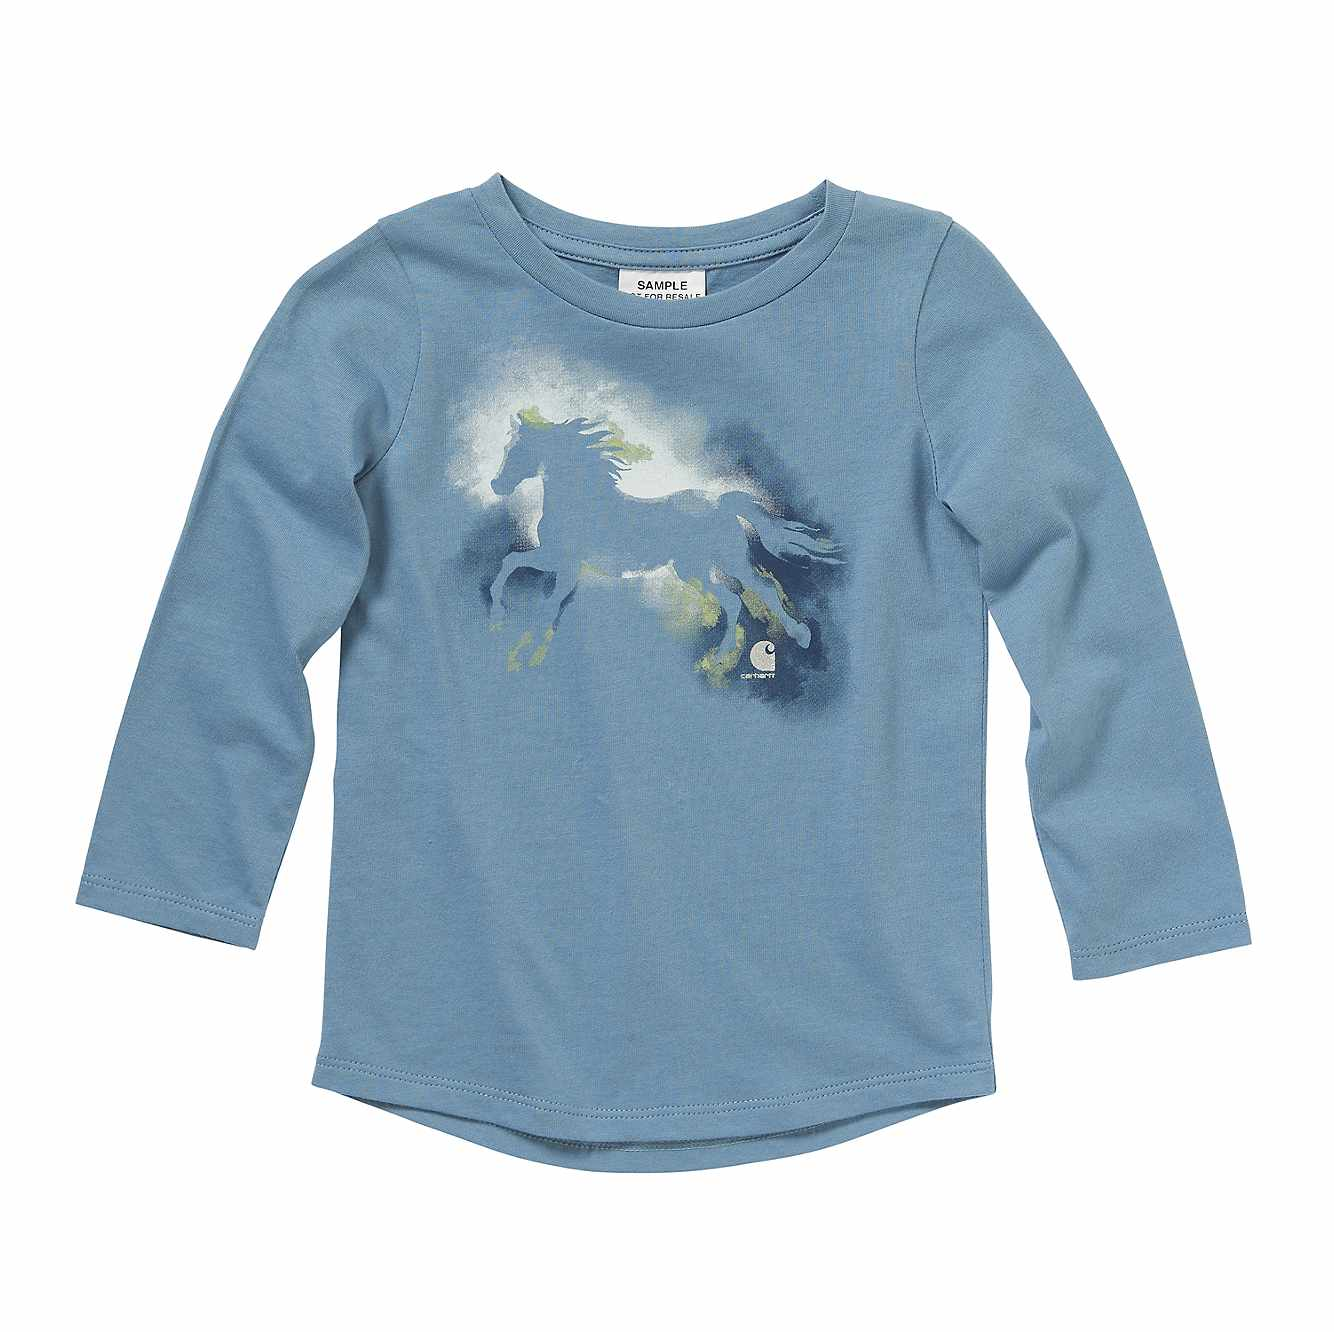 Picture of Watercolor Horse Tee in Blue Heaven